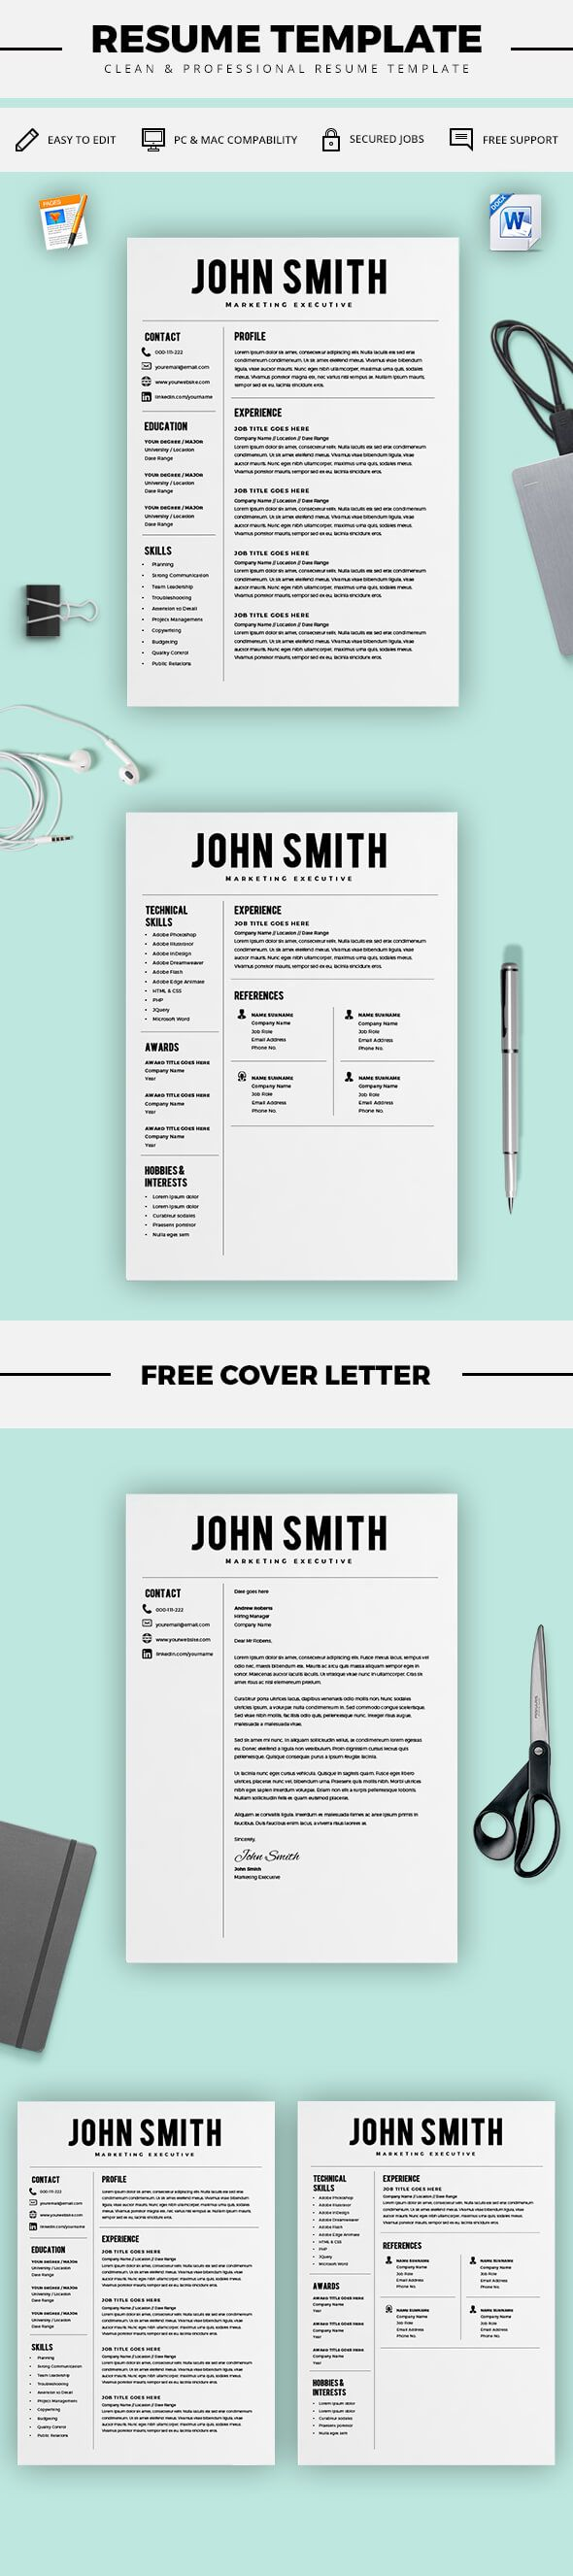 best 25 free cv builder ideas only on pinterest resume